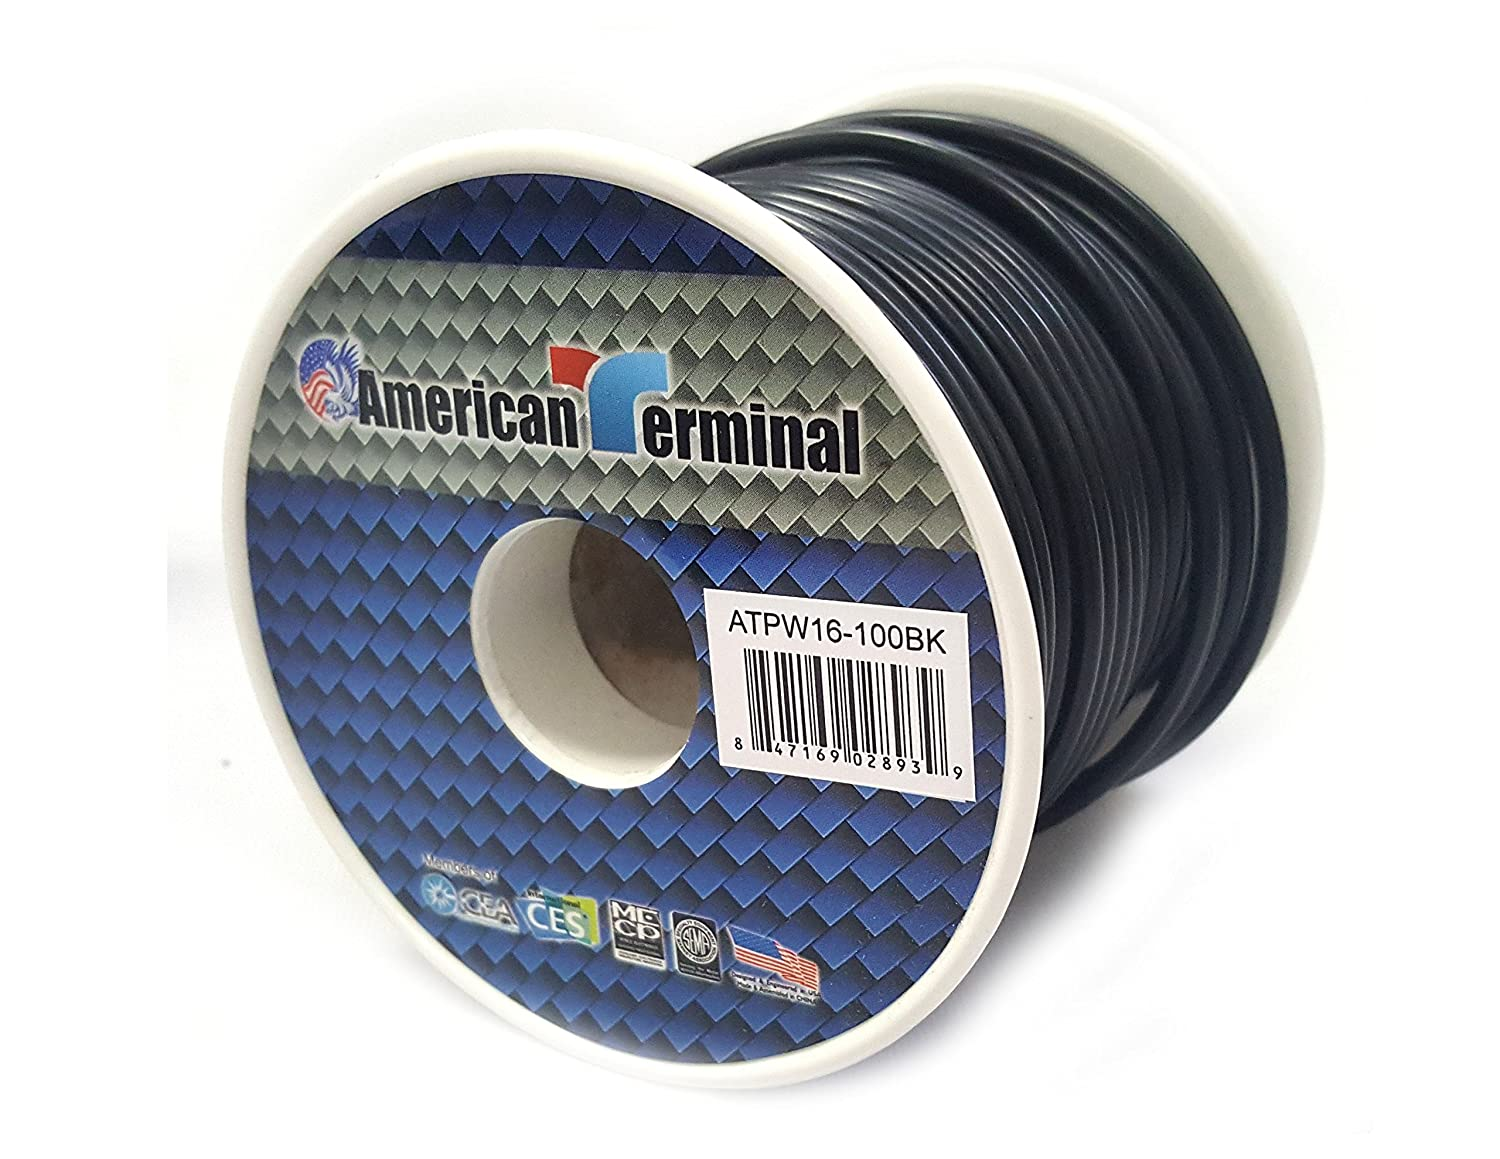 Pink Absolute USA Inc. American Terminal ATPW16-100PK 16 Gauge Primary Wire